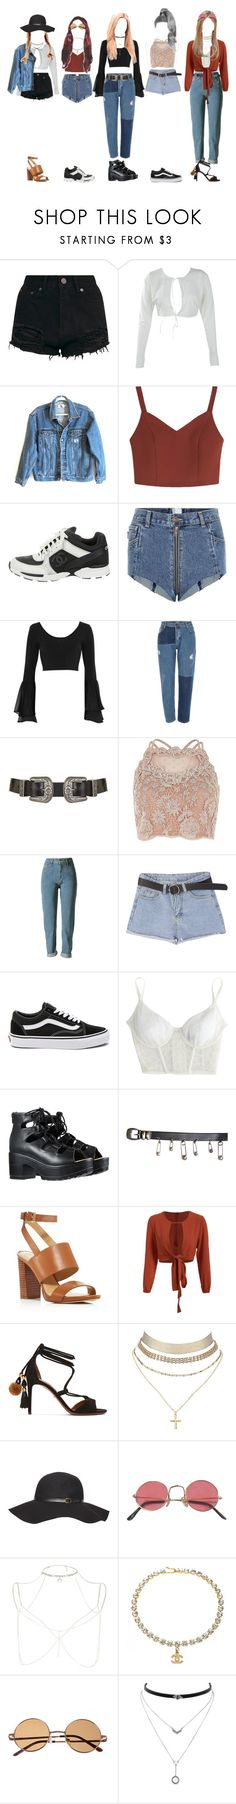 """""""- summer fashion"""" by xxeucliffexx ❤ liked on Polyvore featuring Boohoo, Calvin Klein Jeans, Chanel, Vetements, River Island, Topshop, Vans, Kiki de Montparnasse, Versace and MICHAEL Michael Kors"""